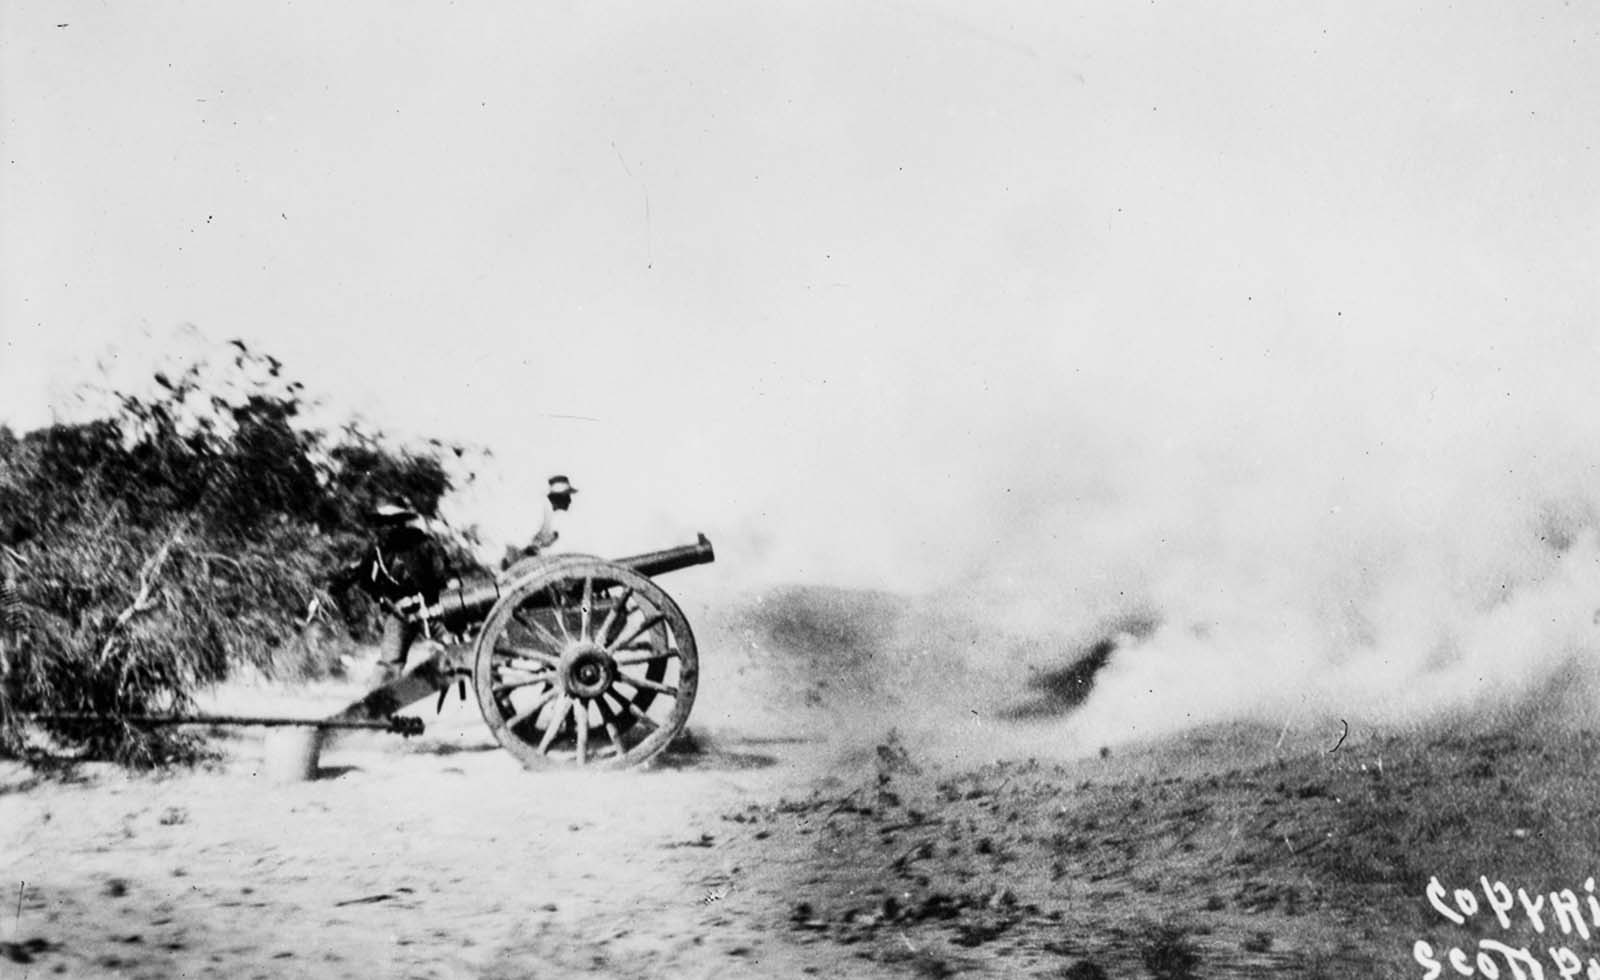 Rebels fire on Ciudad Juárez with a cannon.